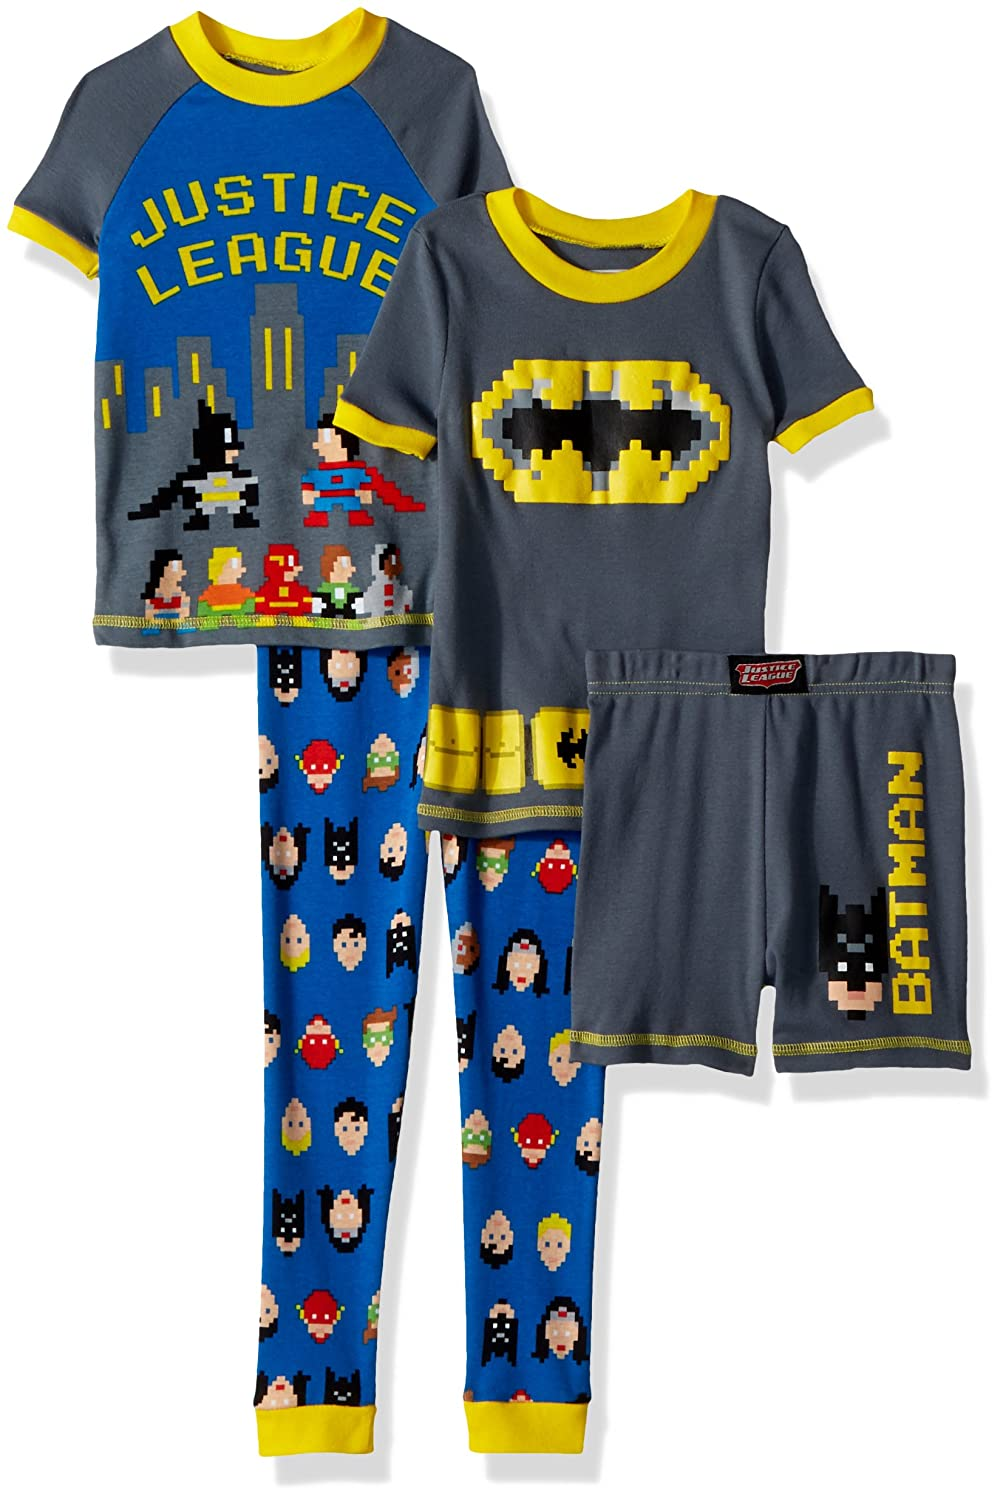 b60d5fea3 Amazon.com  Justice League Boys  Toddler Jl 4 Piece Cotton Pajama ...